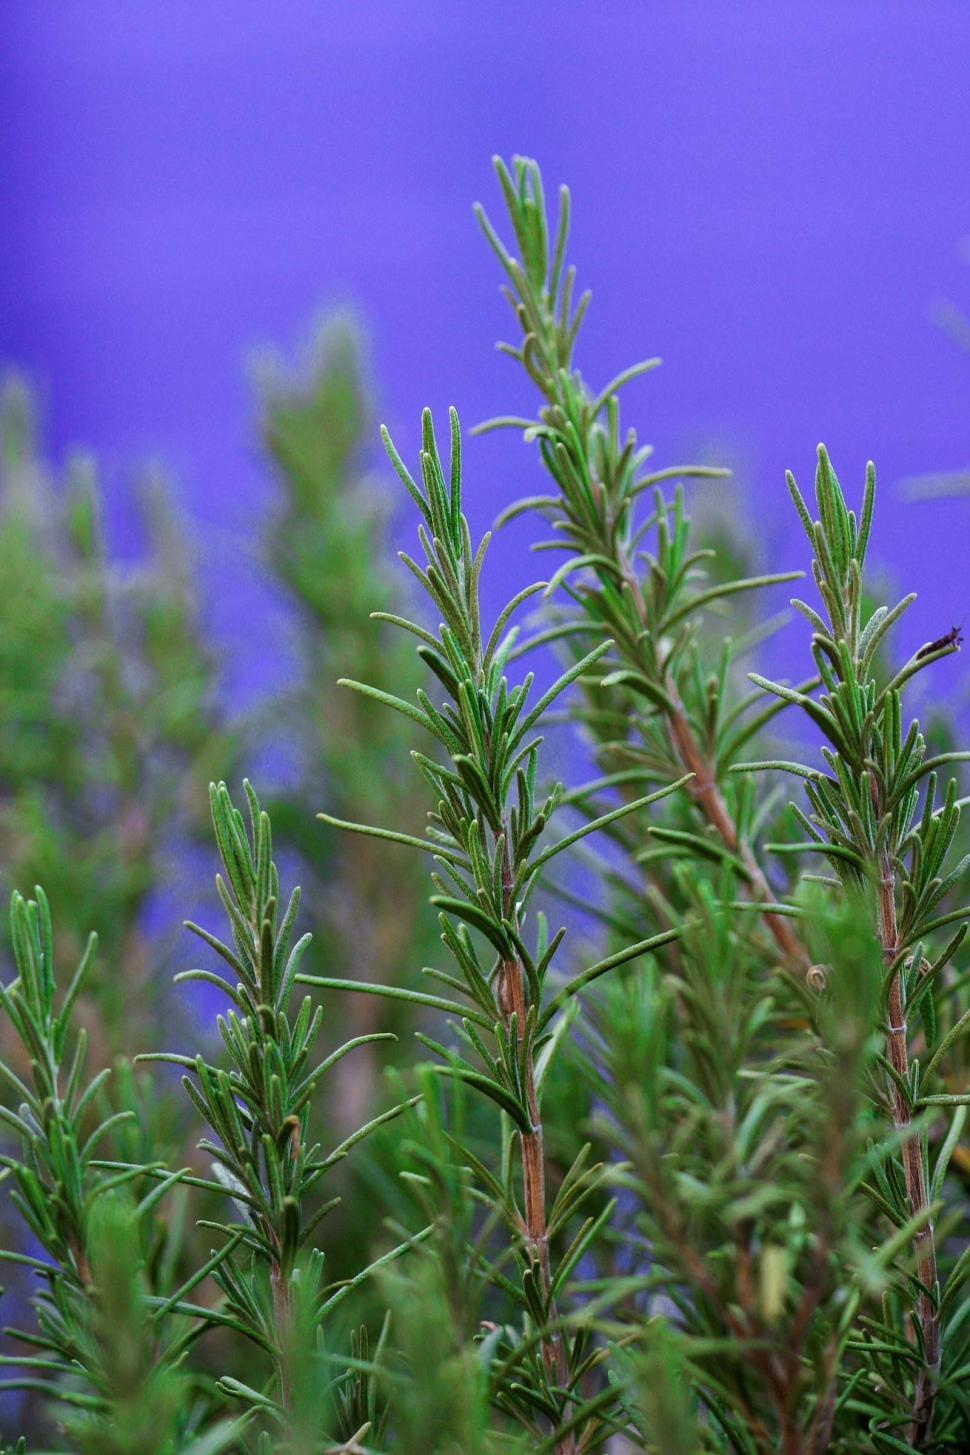 Download Free Stock HD Photo of Rosemary on Purple background Online